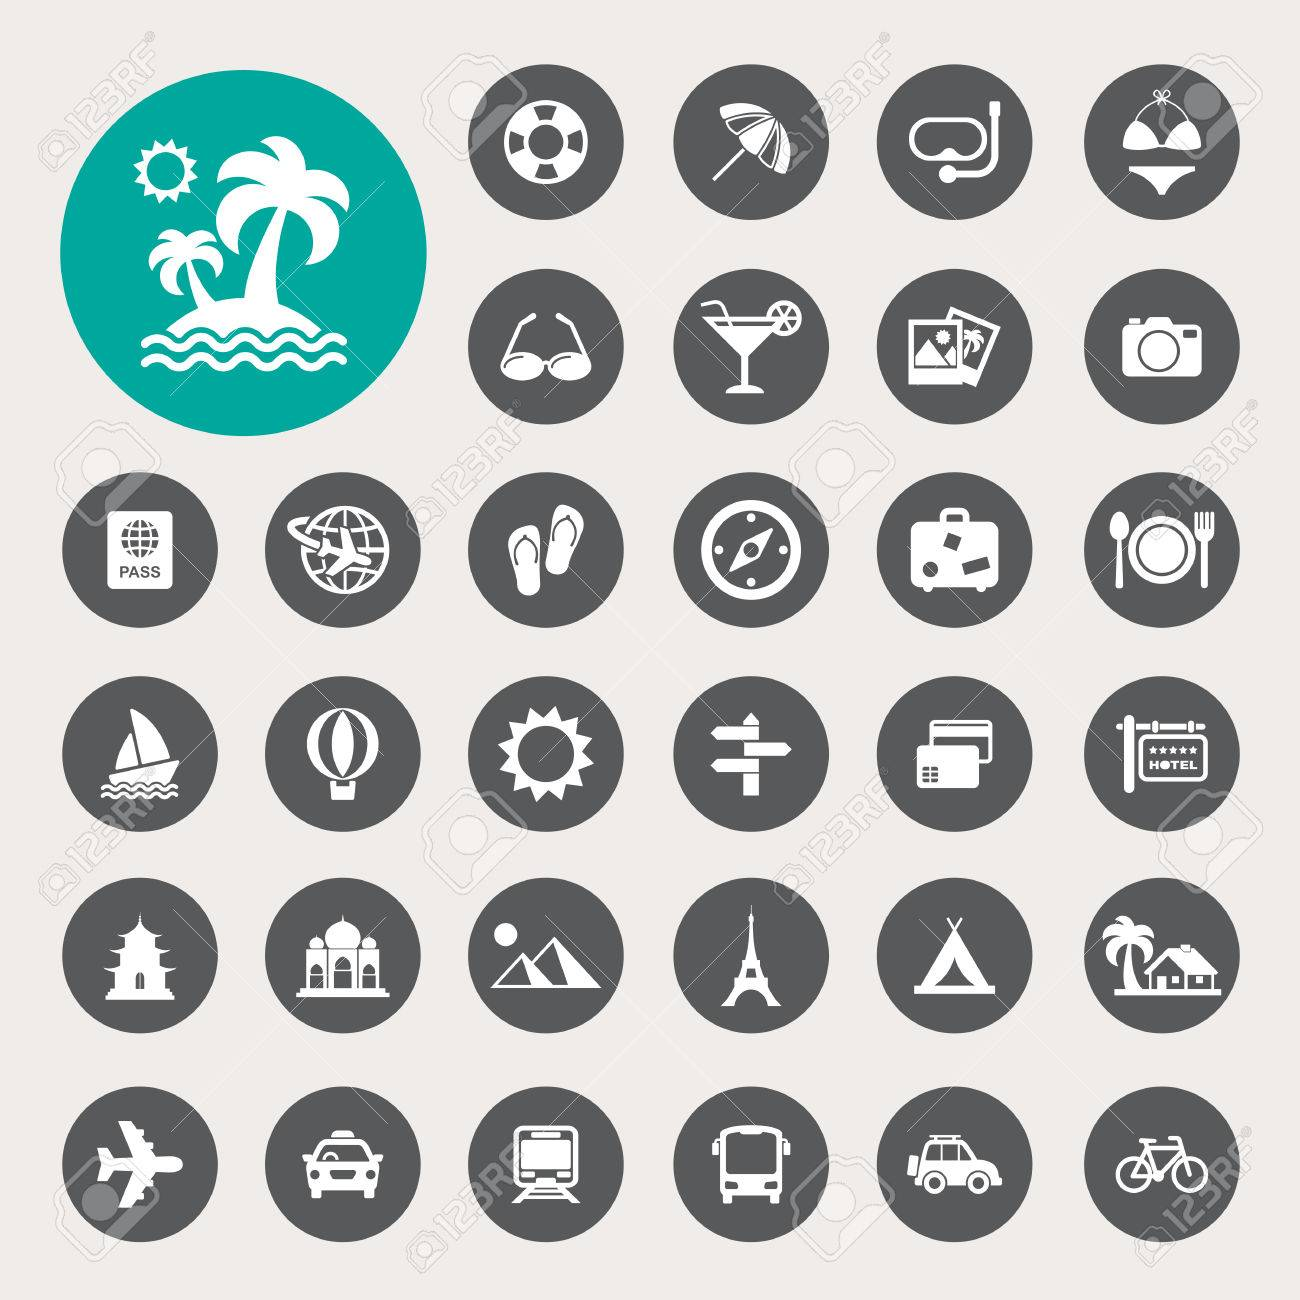 Travel and vacation Icons set - 25930872